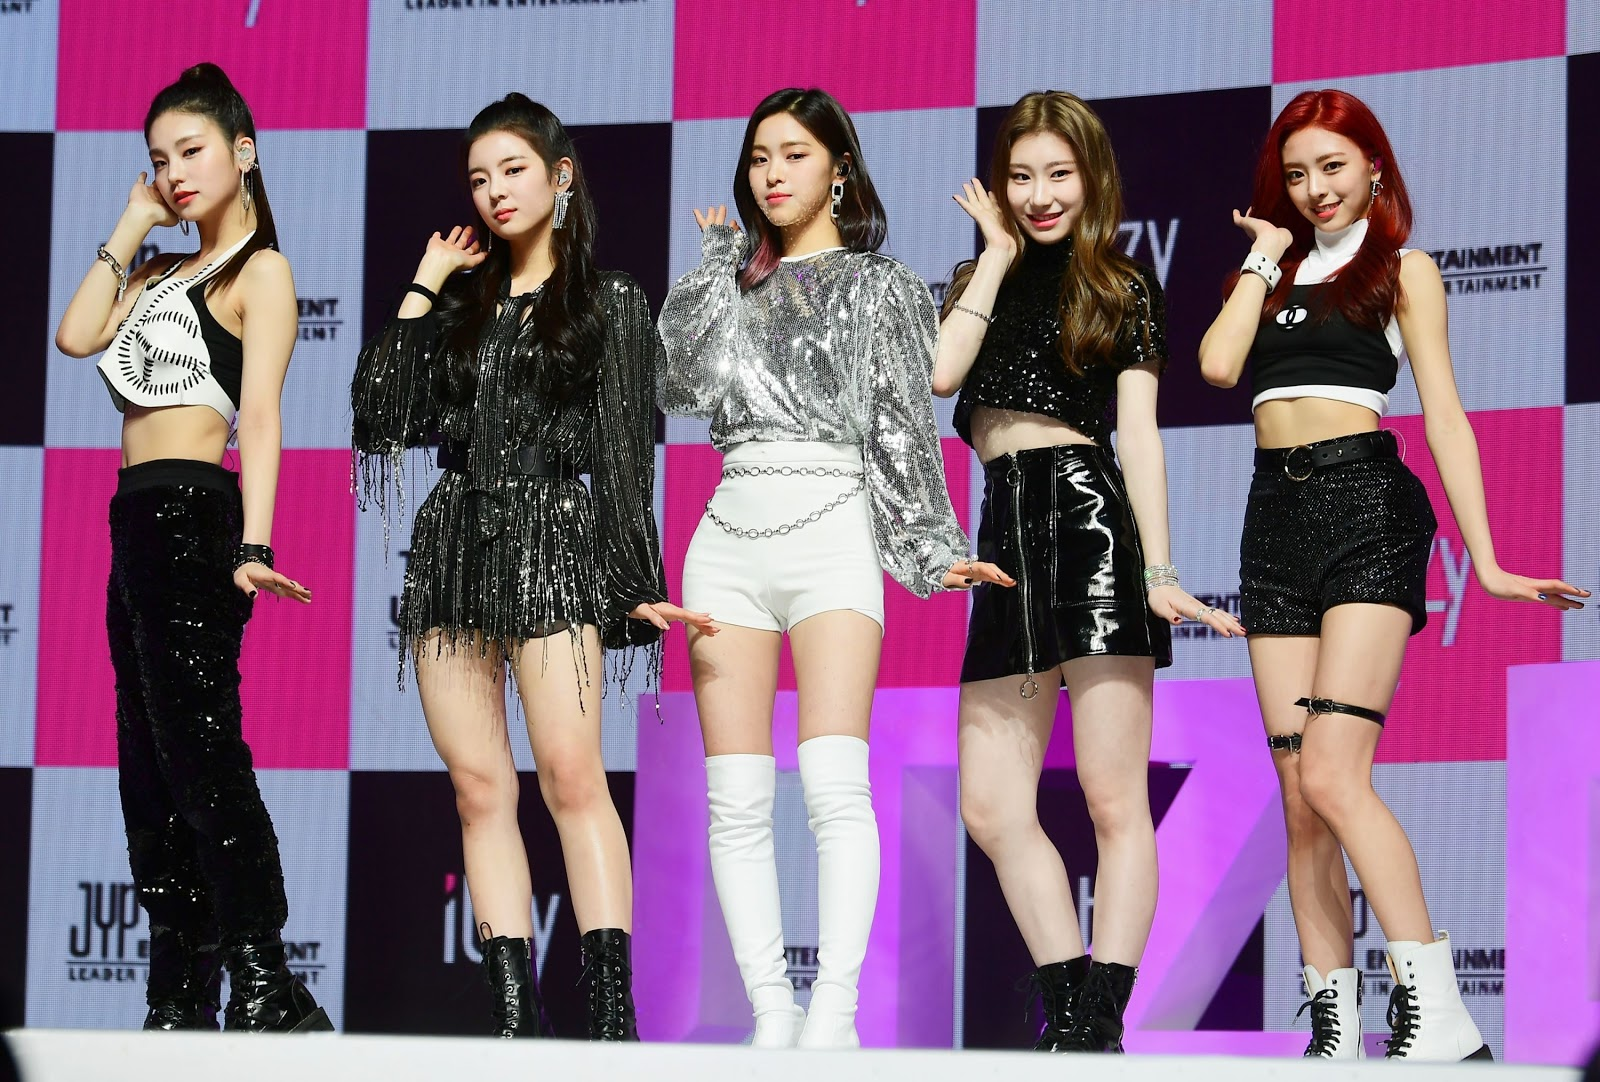 ITZY: Netizens Claim That ITZY Is Copying BLACKPINK, Here's Why